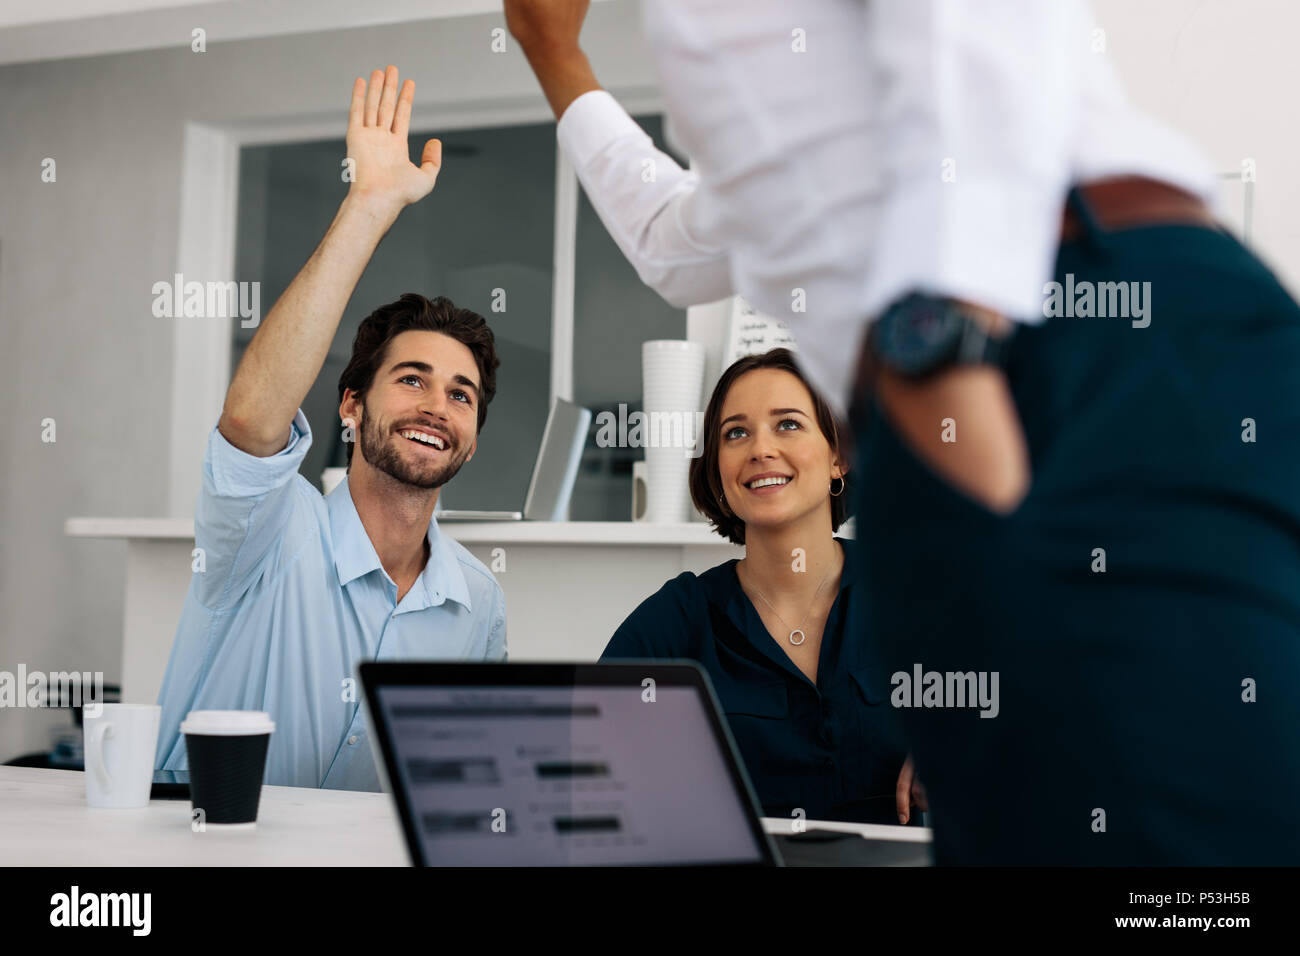 Business colleagues giving a high five sitting at the conference table. Application developers discussing work sitting in the meeting room. - Stock Image